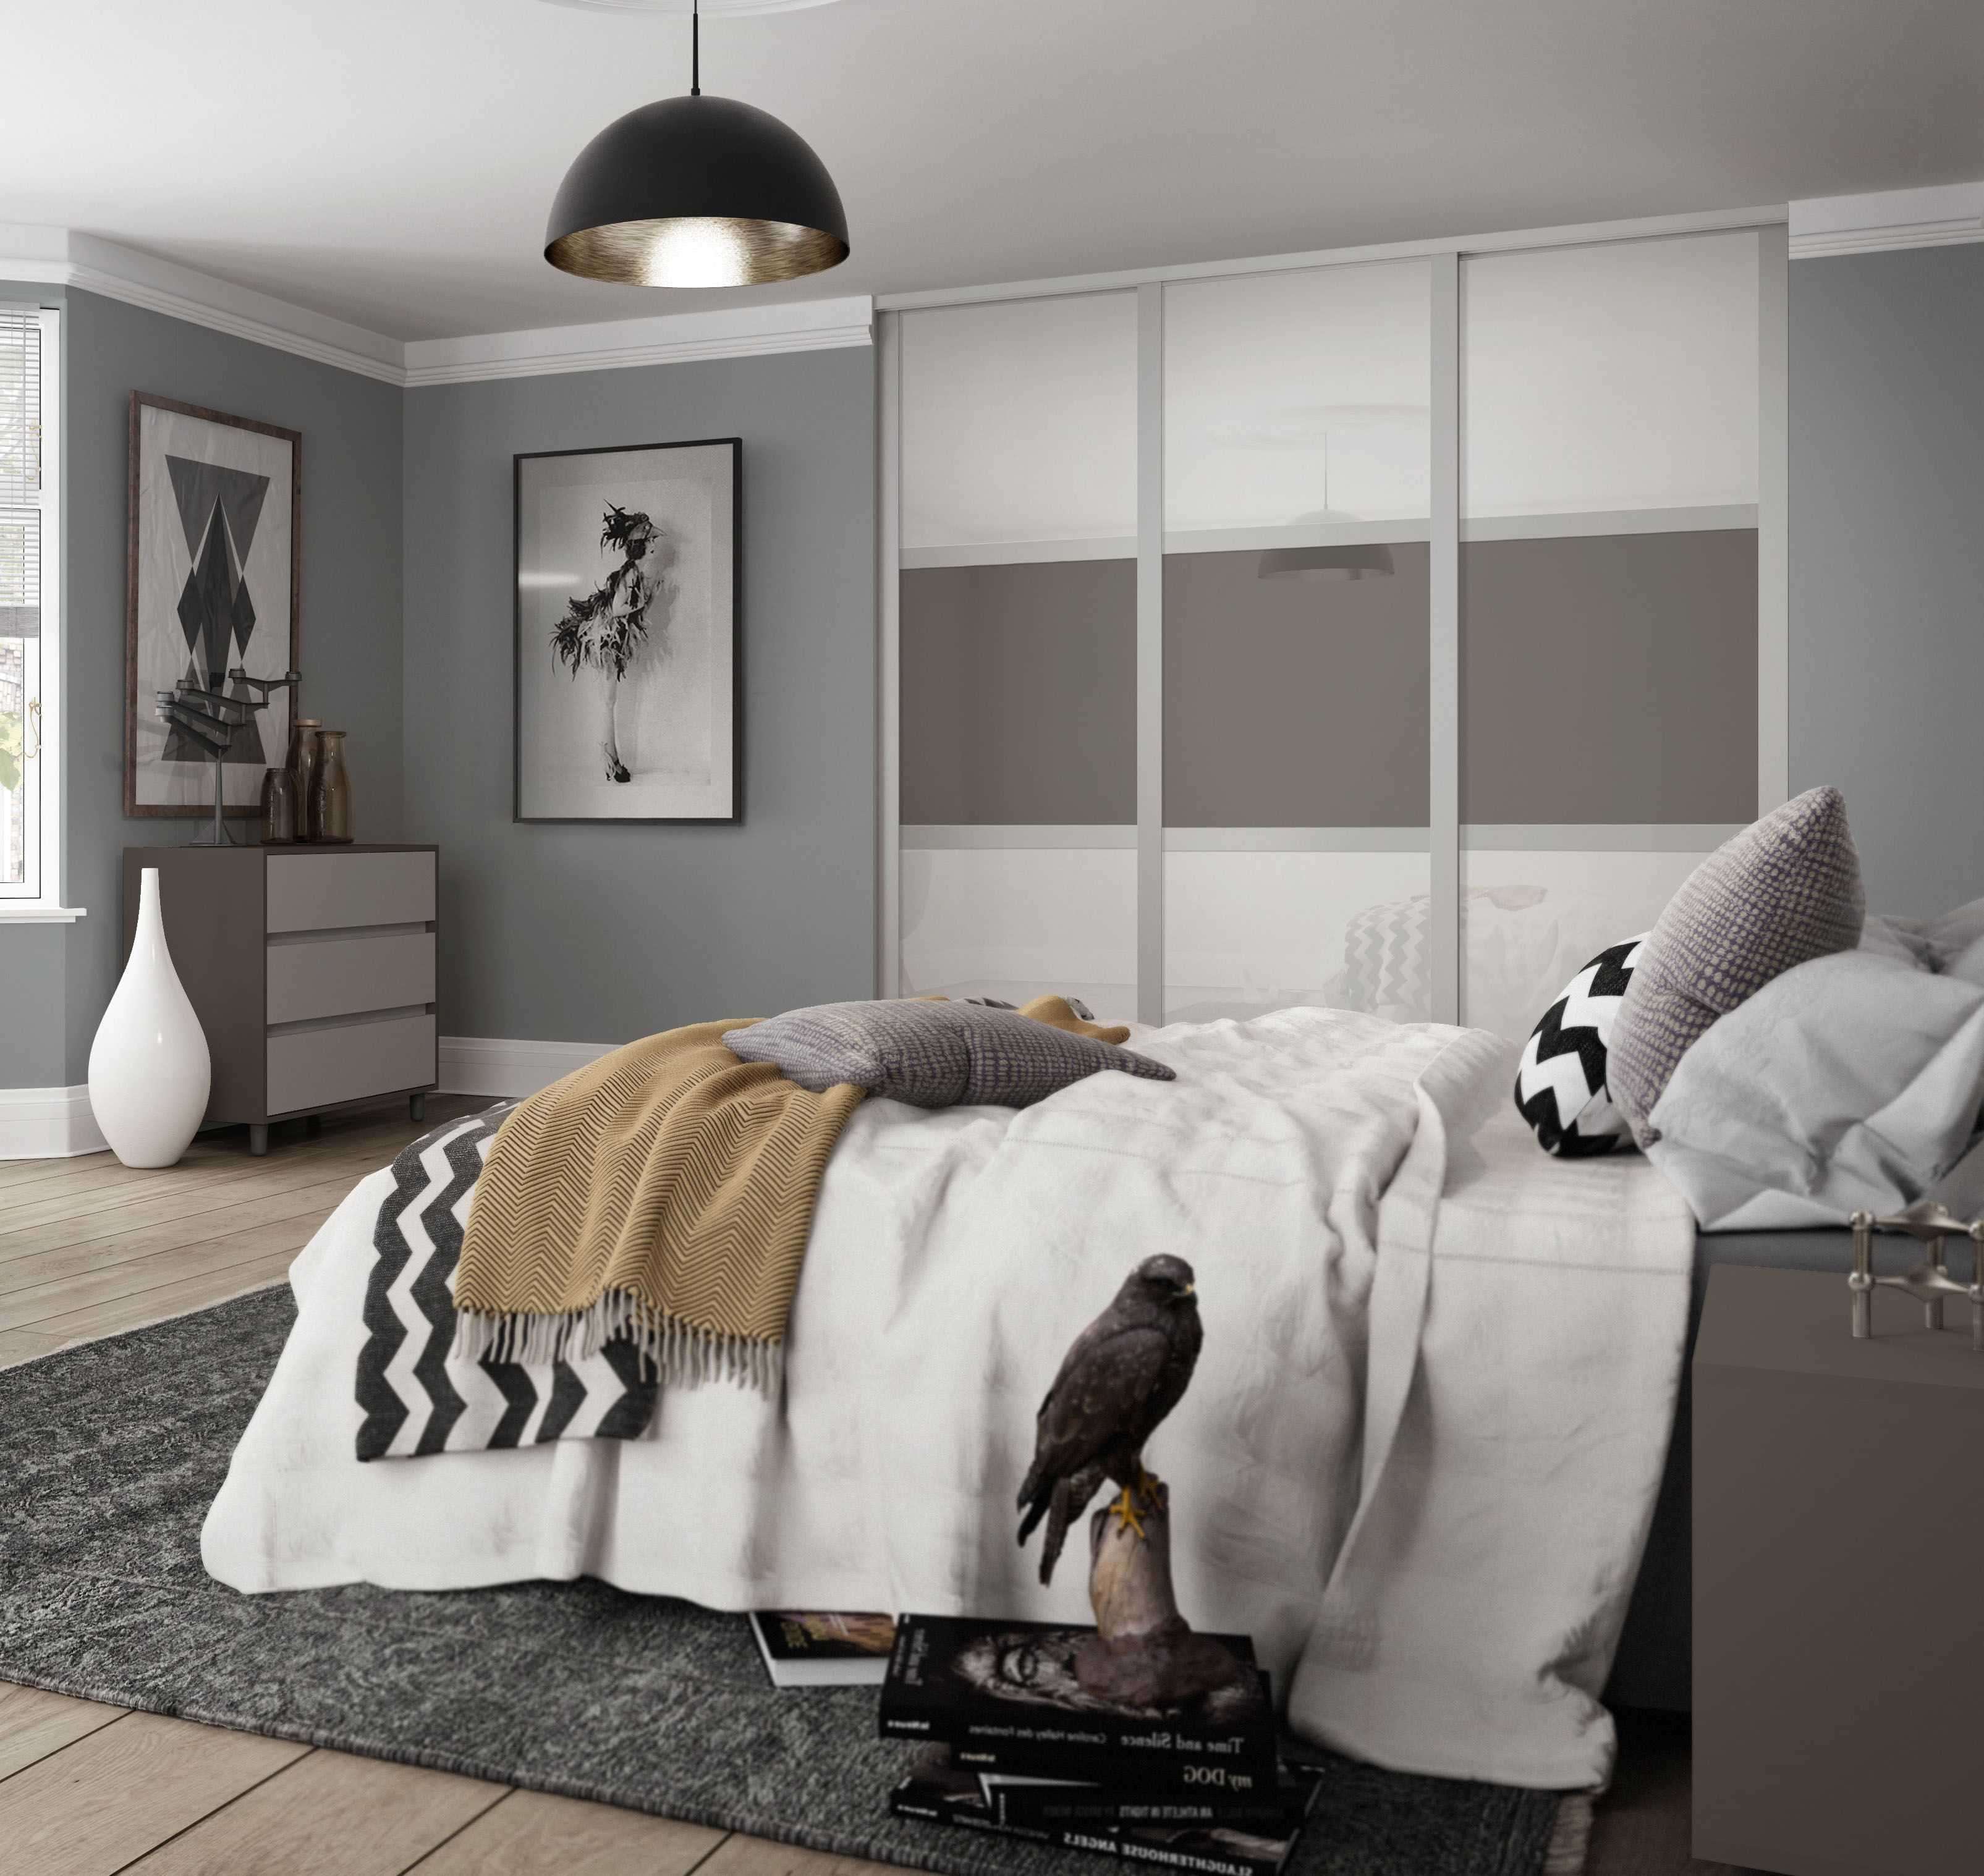 3 panel mirrored sliding closet doors - Deluxe Shaker 3 Panel Sliding Wardrobe Doors In Arctic White Mid Brown Glass With Cashmere